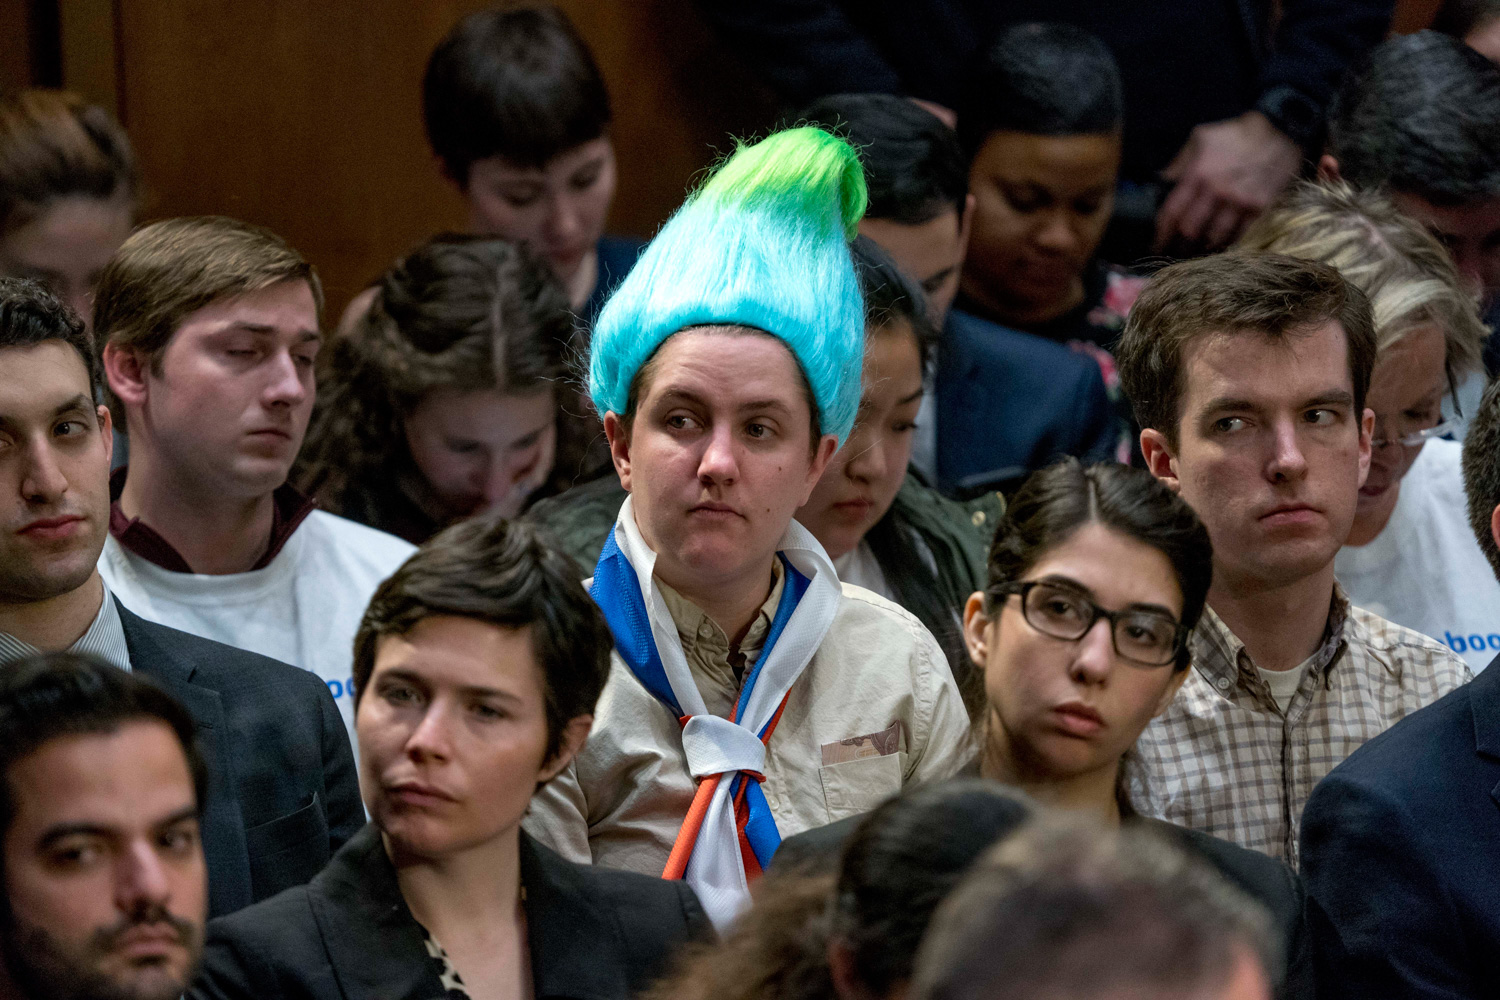 "<div class=""meta image-caption""><div class=""origin-logo origin-image none""><span>none</span></div><span class=""caption-text"">An audience member wearing a blue and green pointy wig, aiming to look like a Russian troll as Facebook CEO Mark Zuckerberg testifies. (Andrew Harnik/AP Photo)</span></div>"